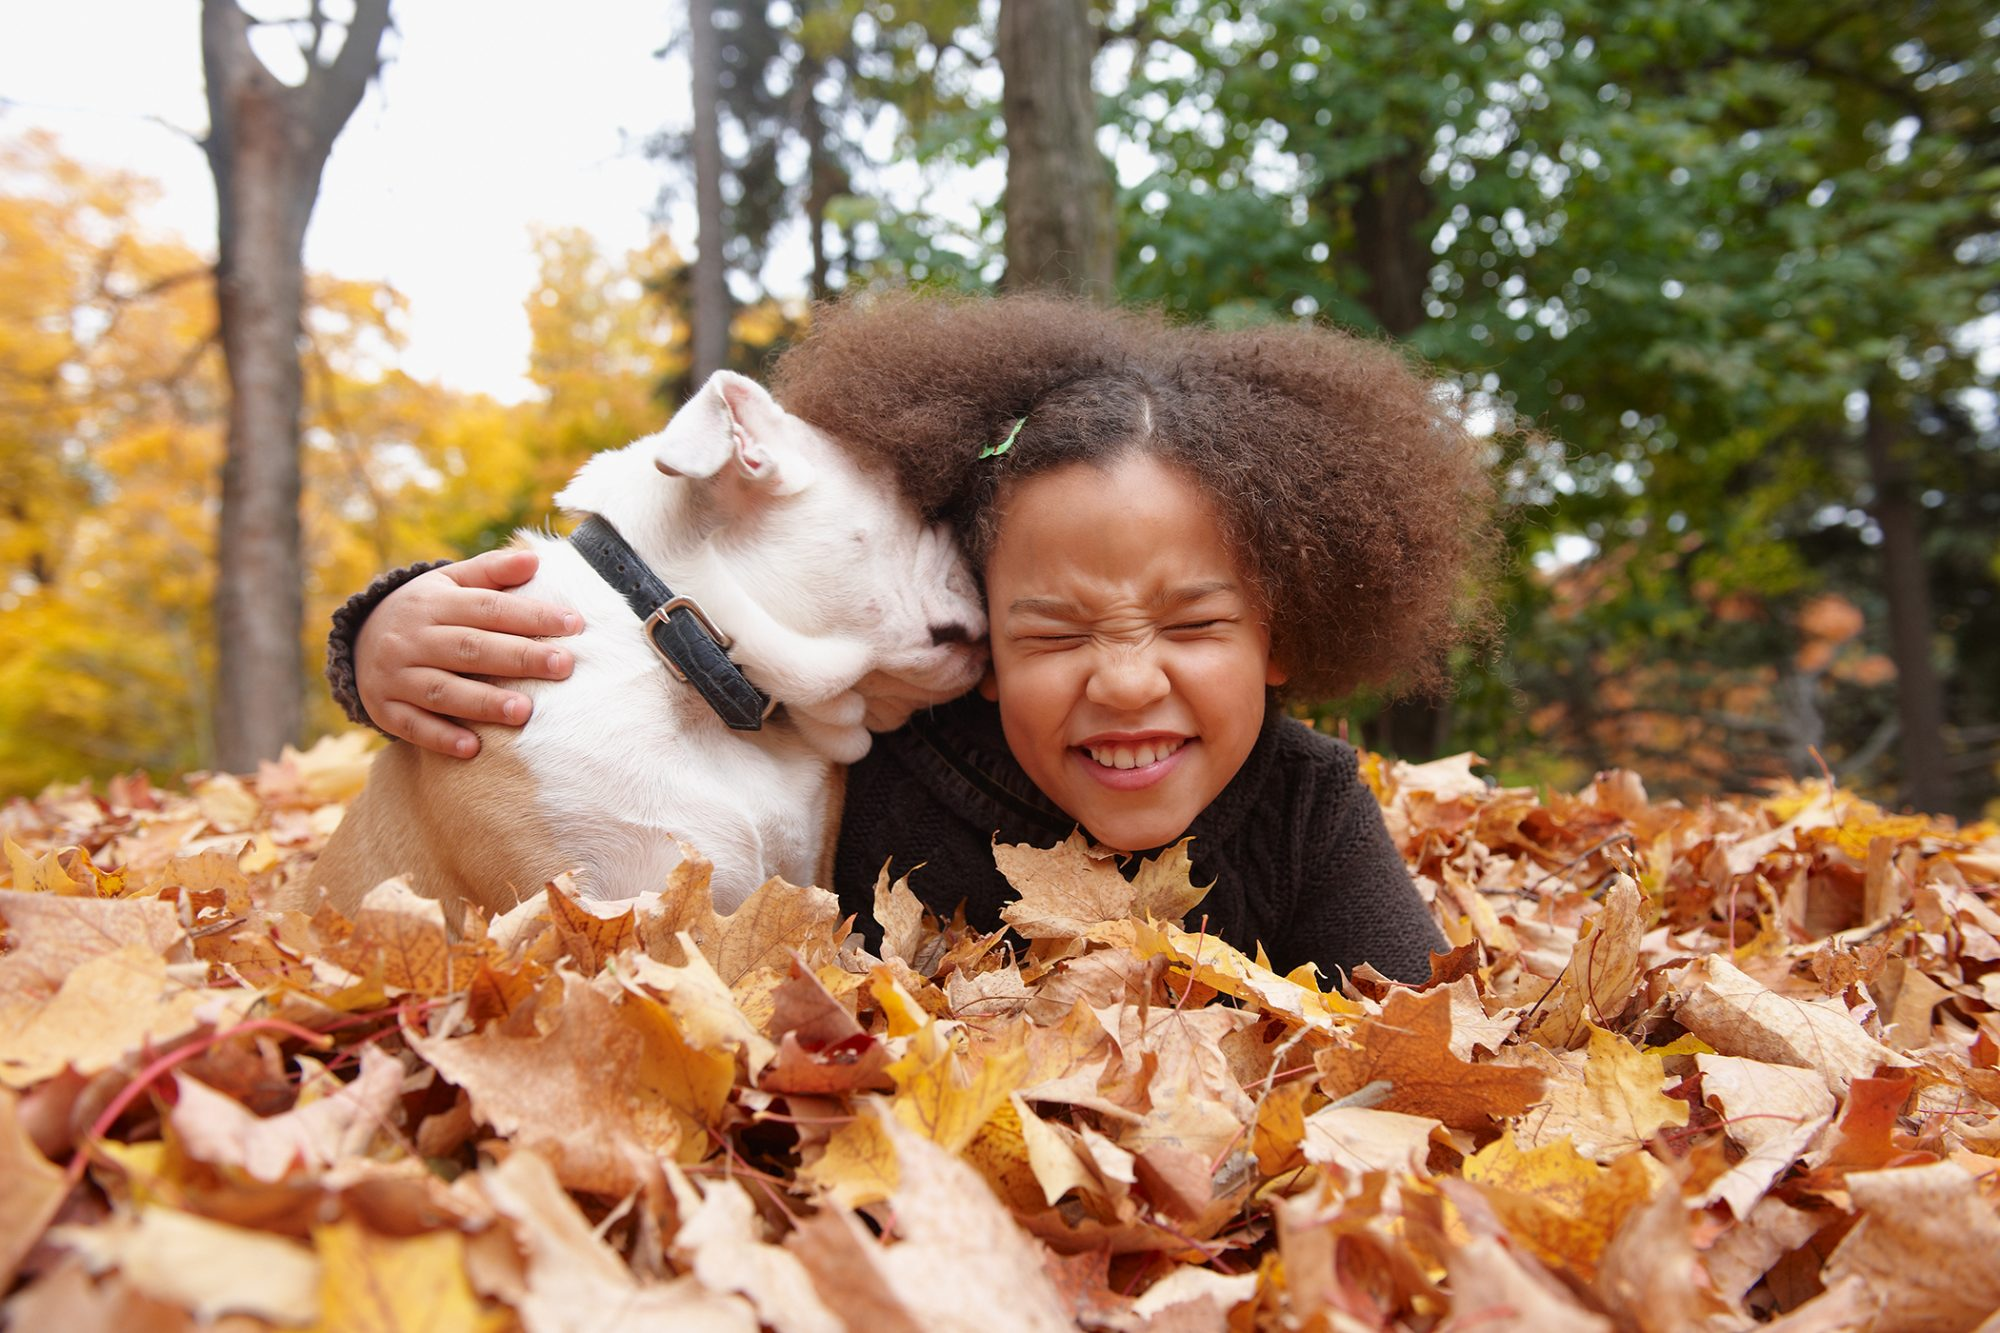 dog lying in autumn leaves kissing a child on the cheek